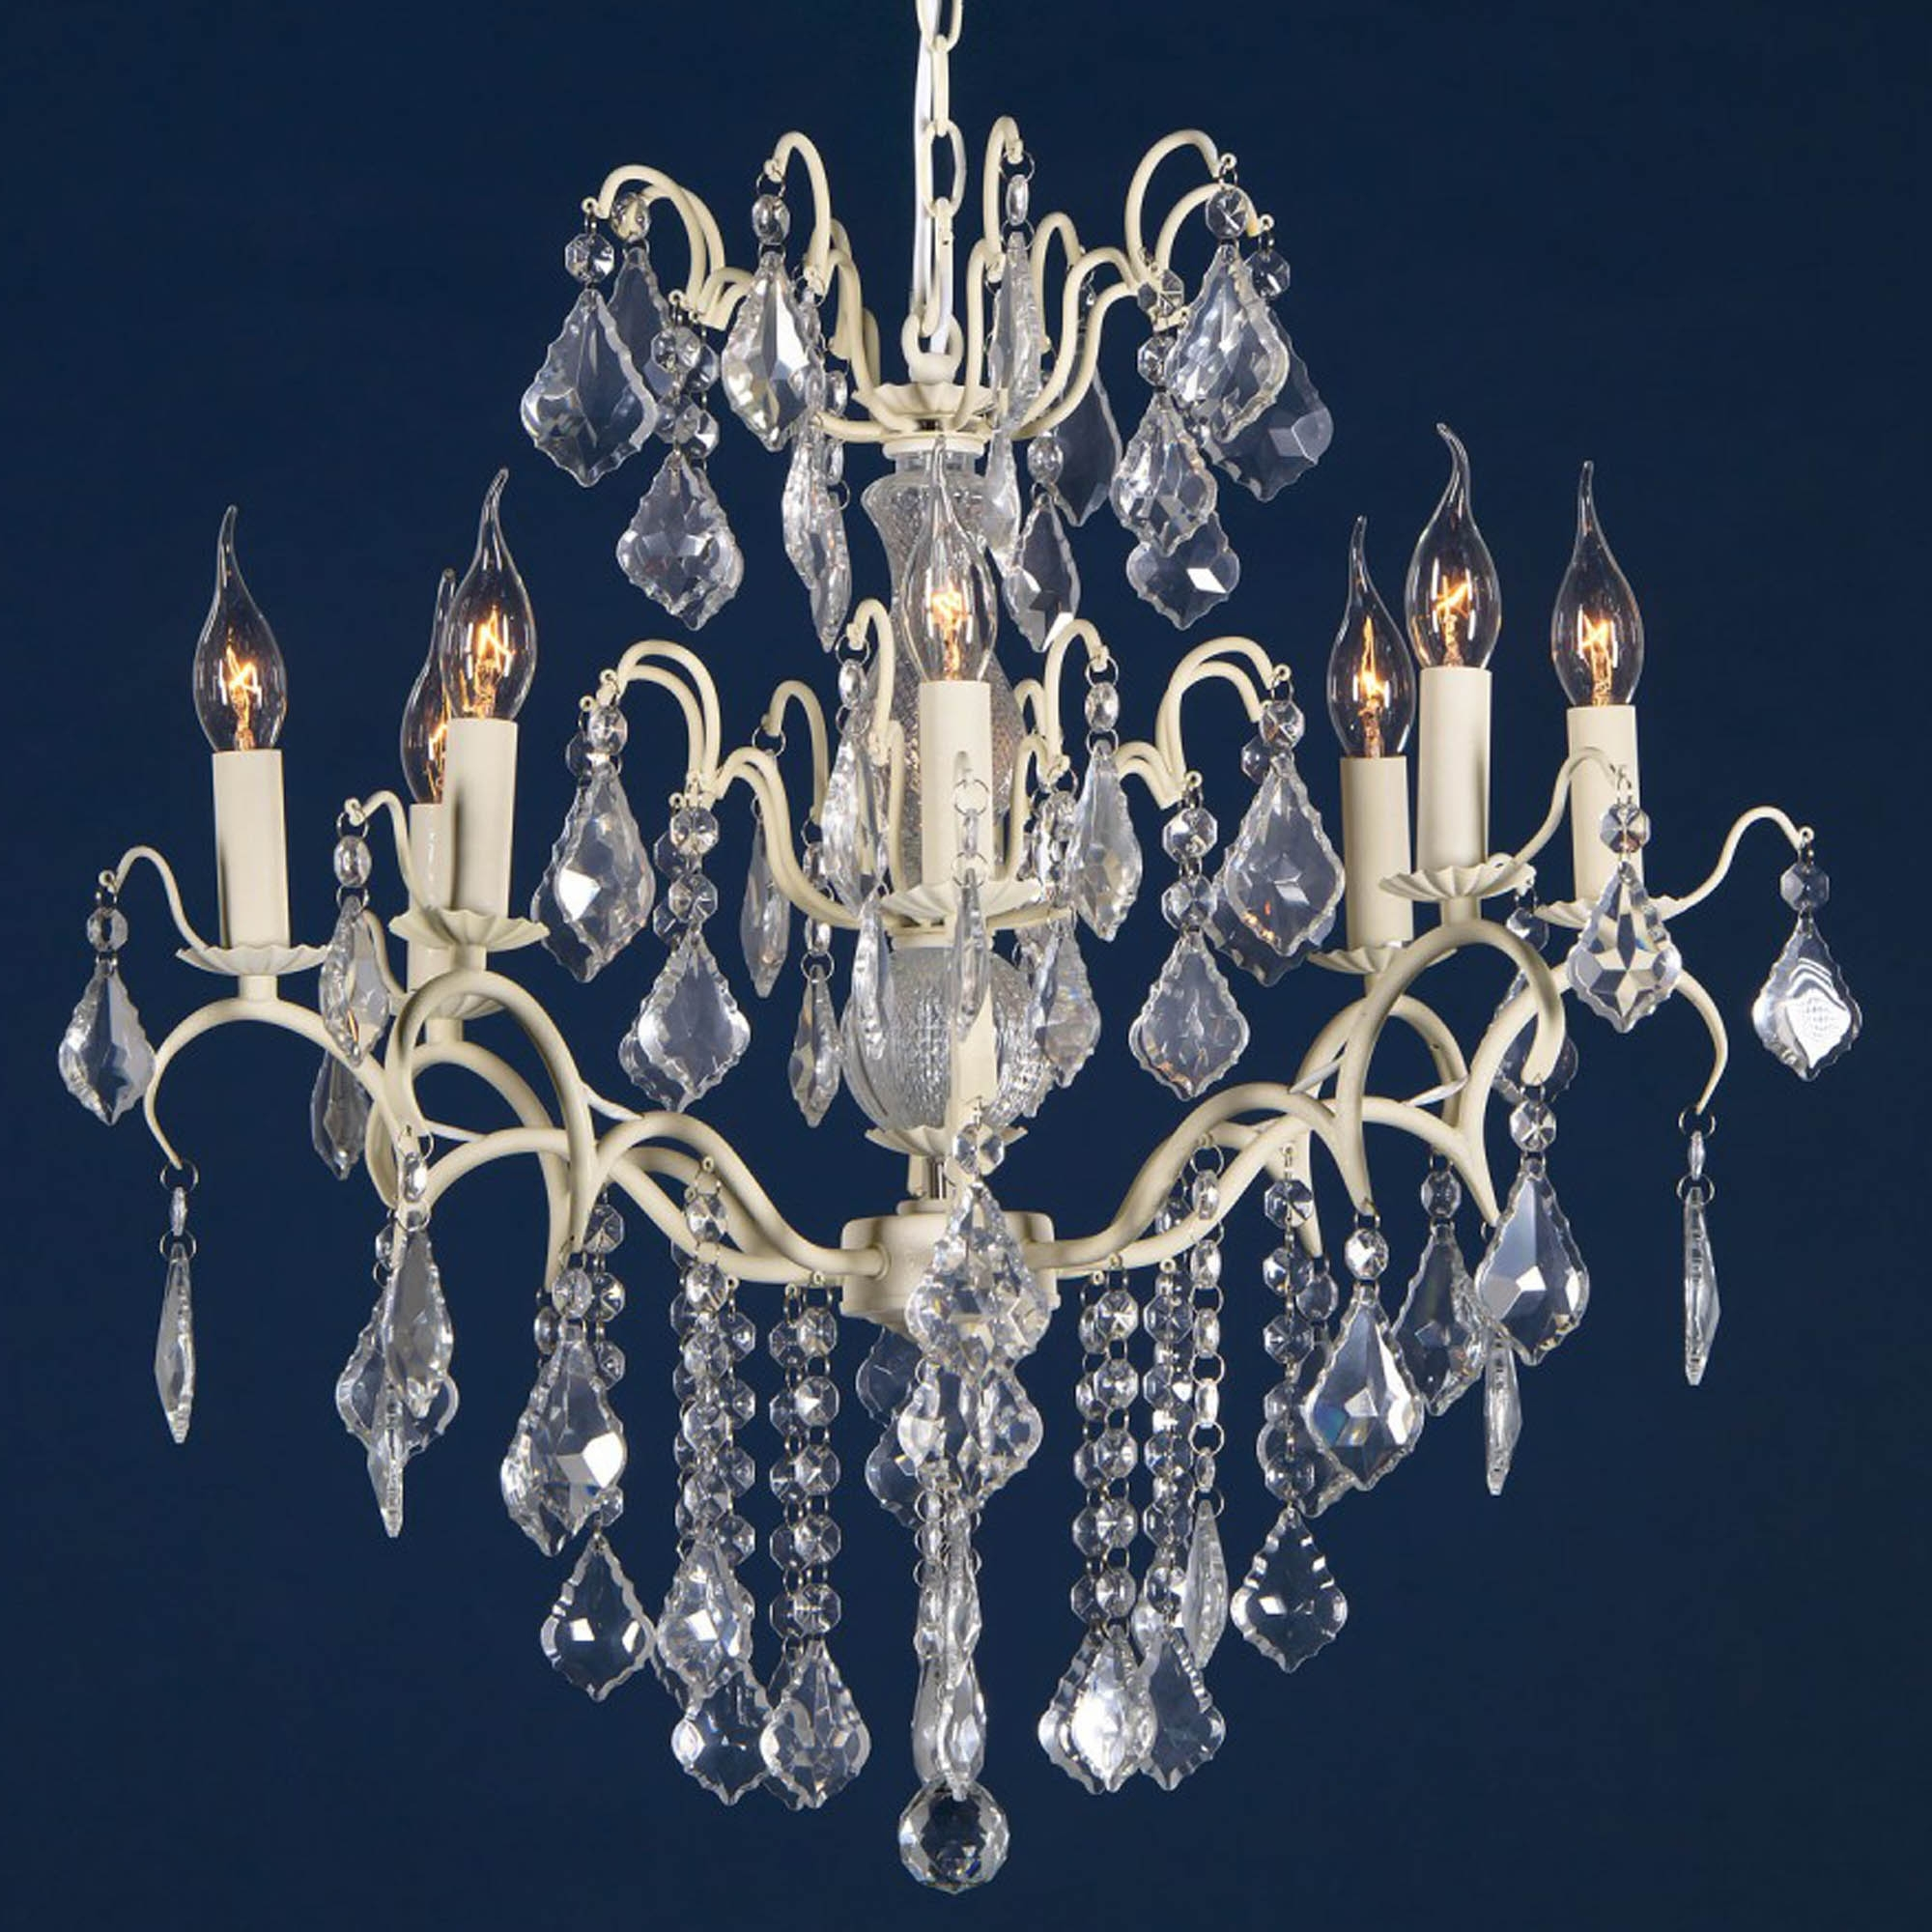 Charlotte cream crack antique french style chandelier chandeliers charlotte cream crack antique french style chandelier arubaitofo Choice Image